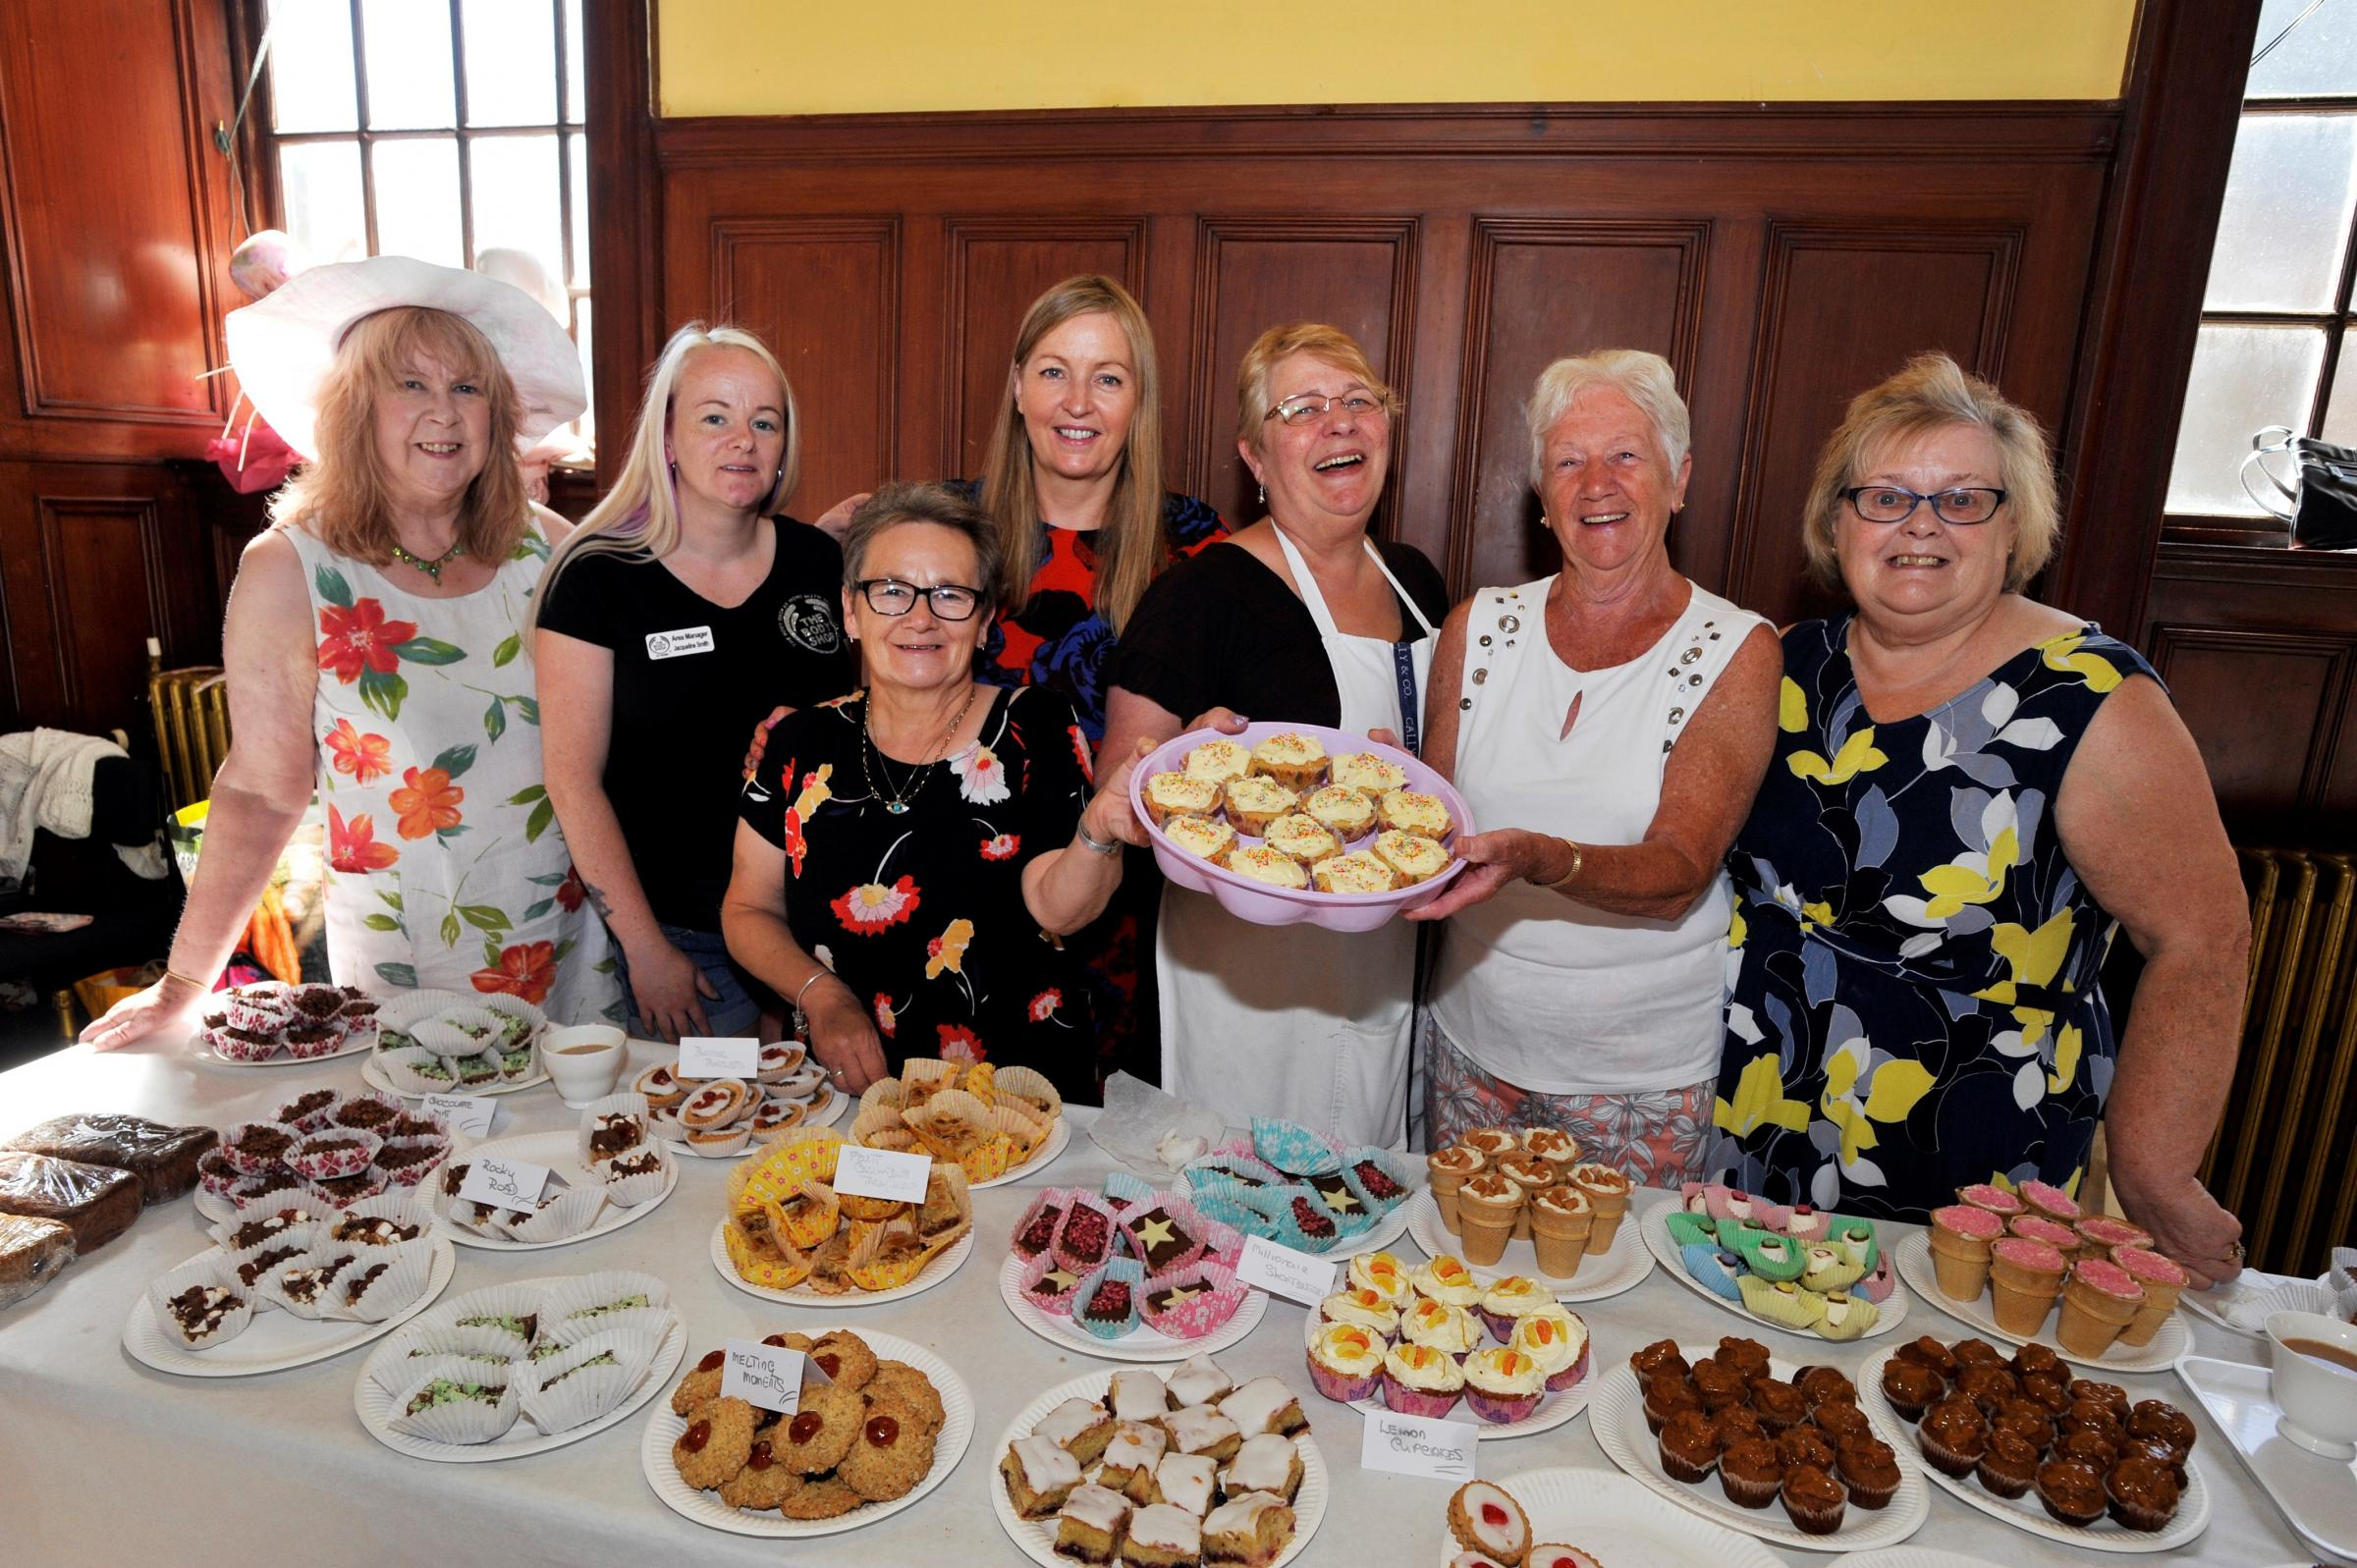 TEMPTING FARE: A wide range of cakes were on offer at the Old Parish church fayre.